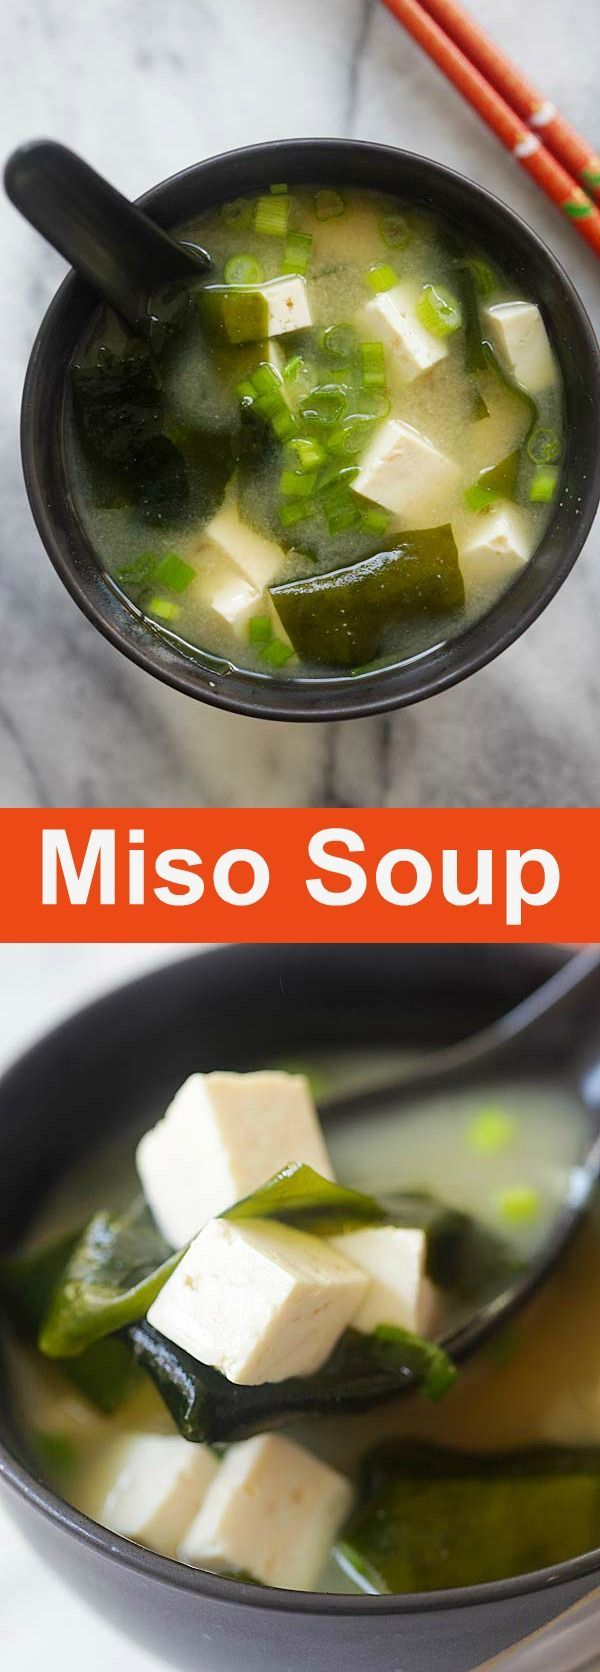 Easy Miso Soup – quick miso soup recipe with tofu and seaweed. Miso soup is hearty, delicious, healthy and takes 15 minutes to make | http://rasamalaysia.com